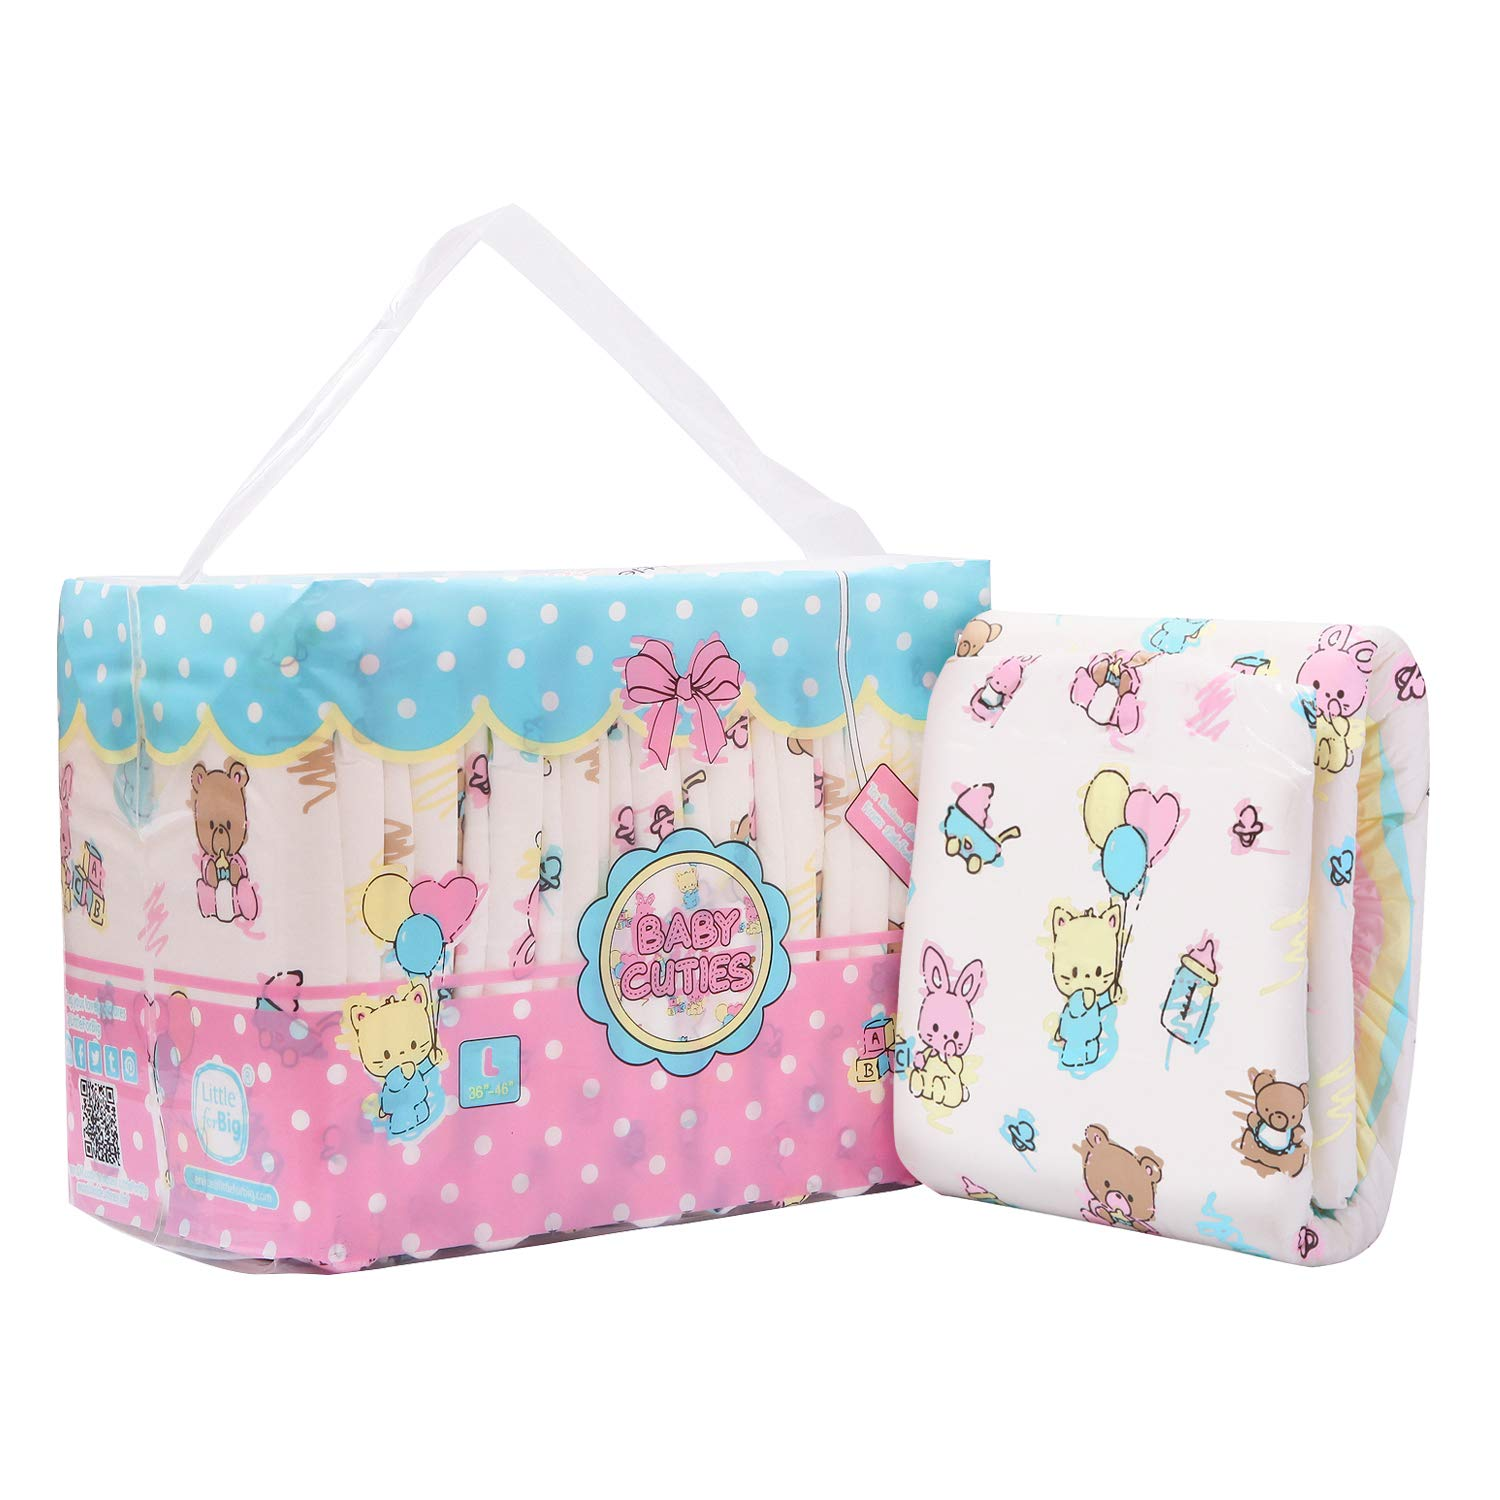 Littleforbig Printed Adult Brief Diapers Adult Baby Diaper Lover ABDL 10 Pieces - Baby Cuties(L)